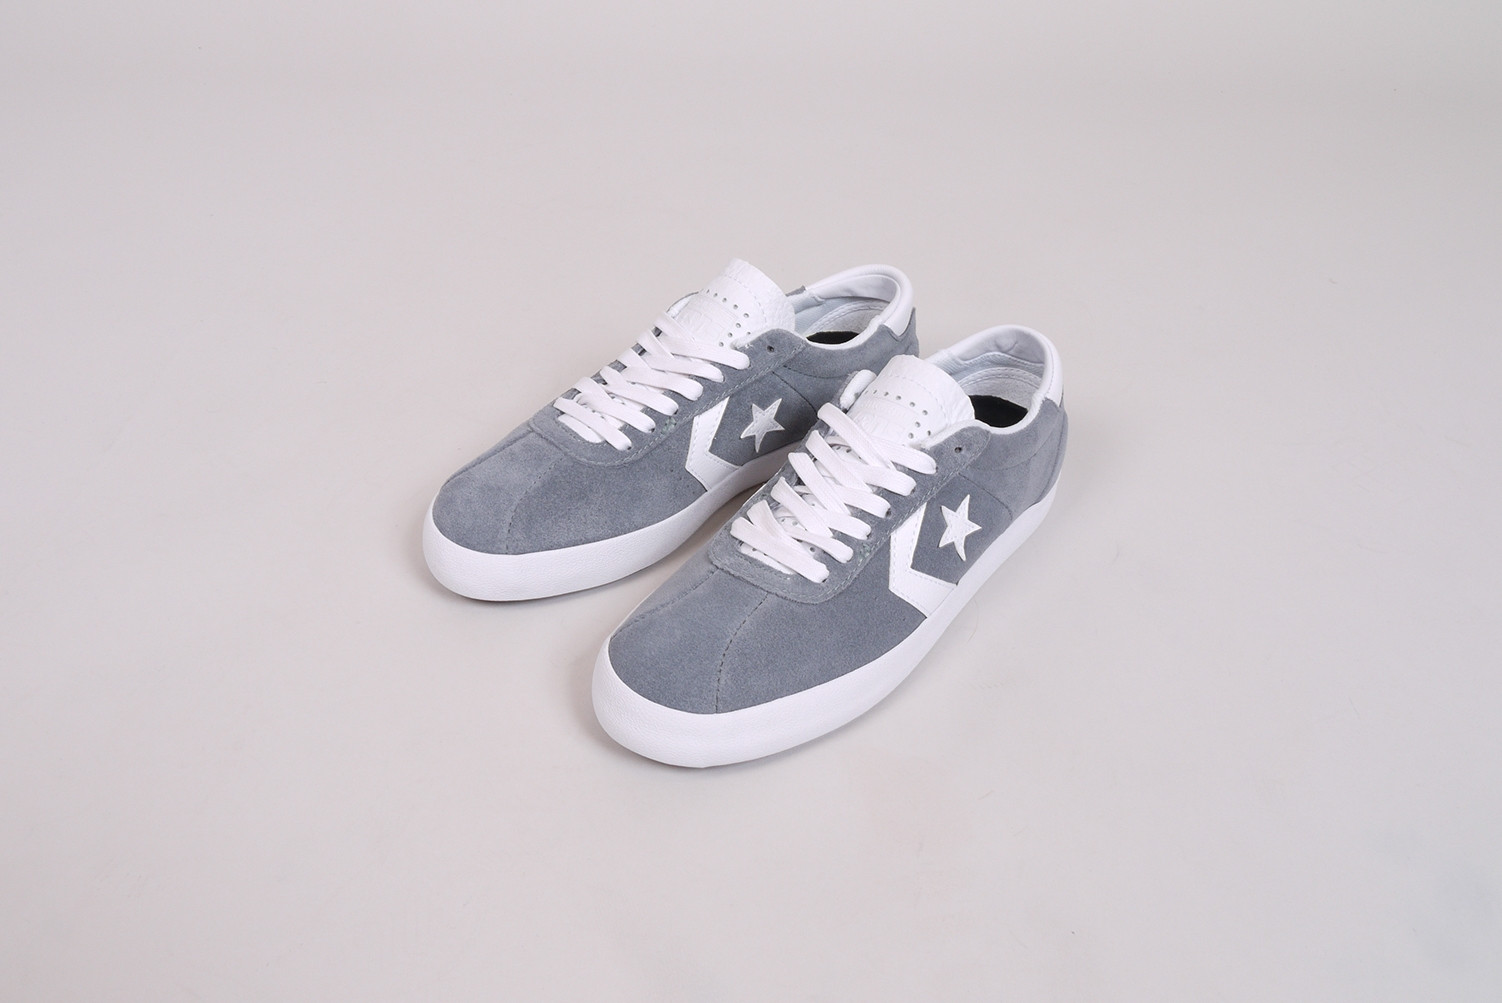 Converse Breakpoint Pro OX cool grey | Alleyoop